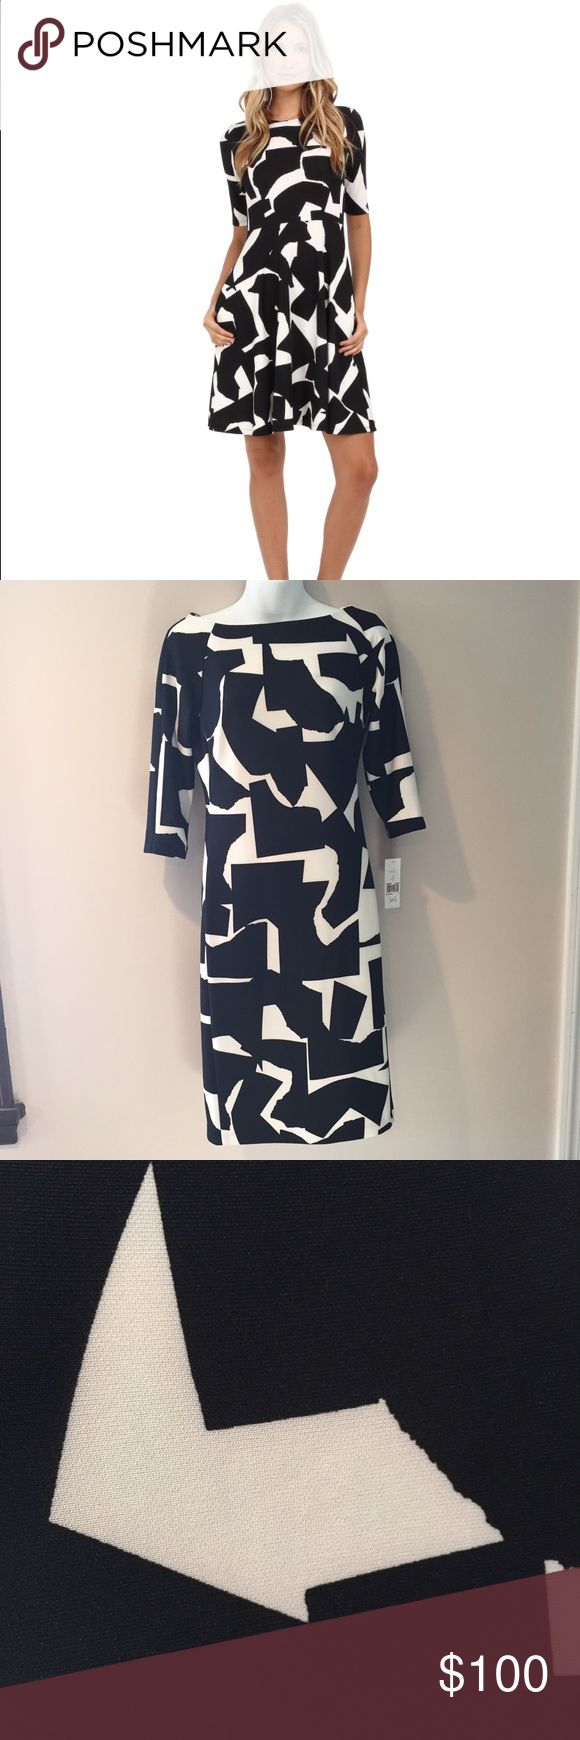 "Donna Morgan black and white dress. Size 4  Donna Morgan black and white dress. 38"" long   Poly/spandex. Donna Morgan Dresses"